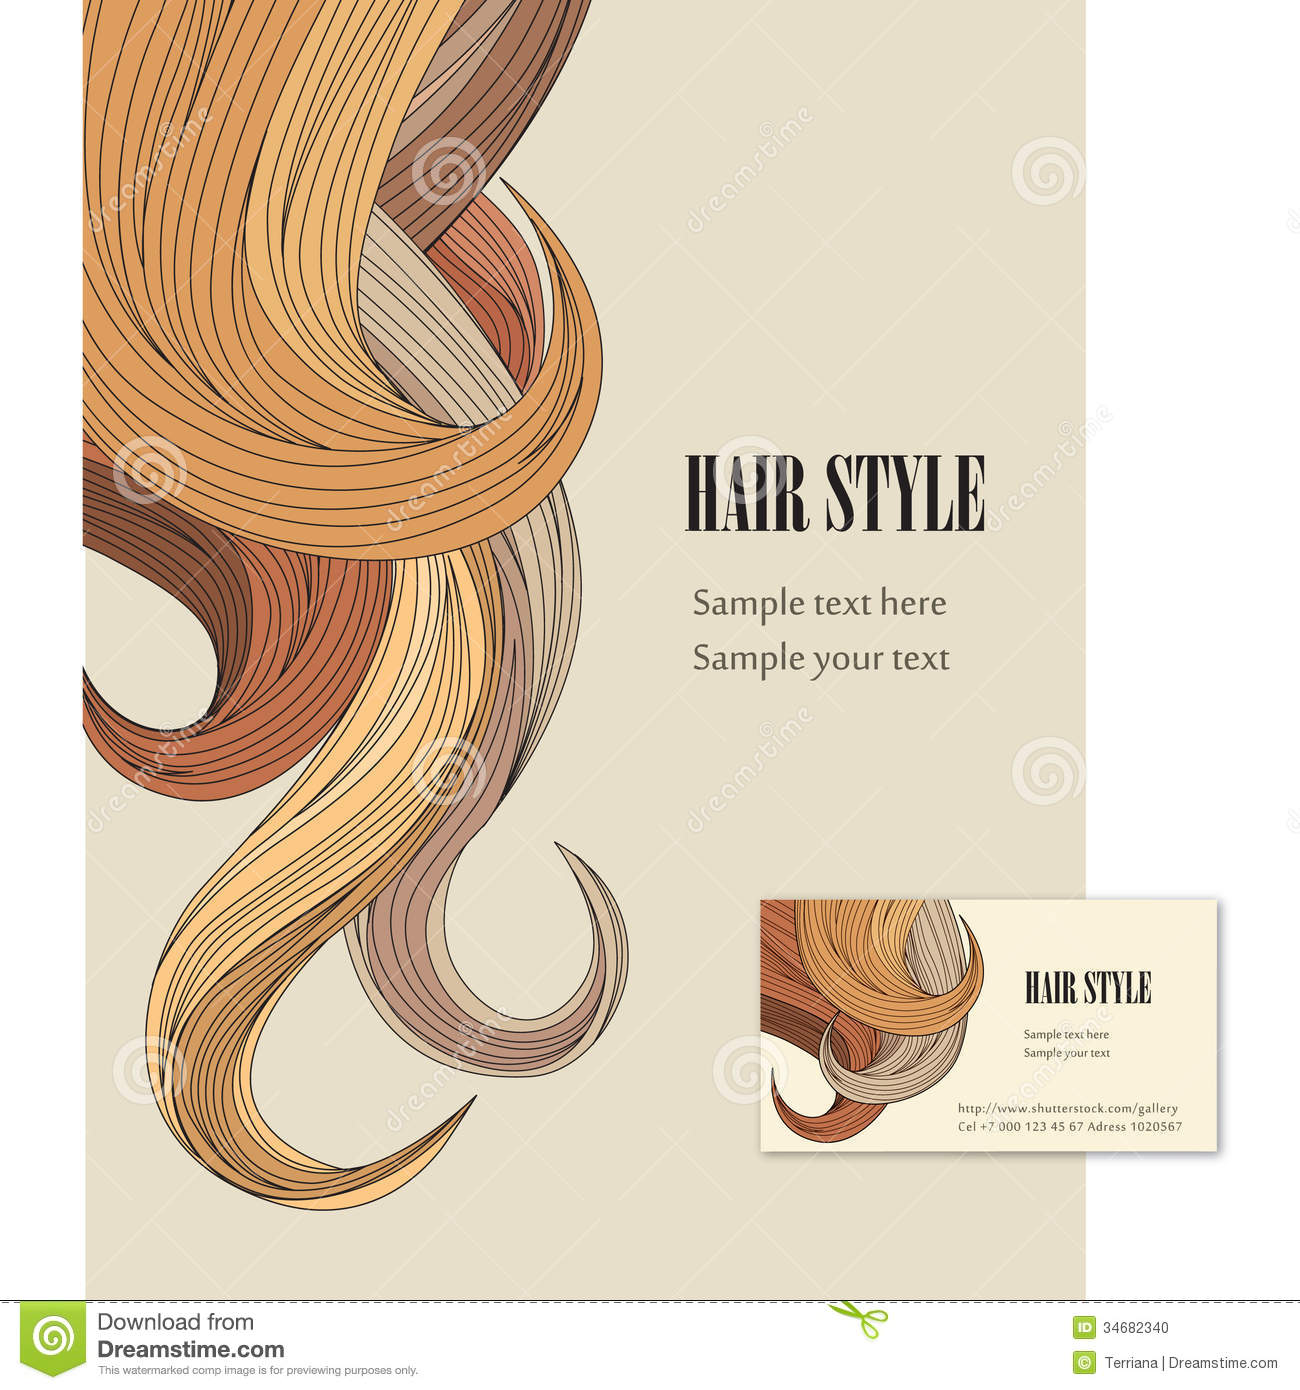 Hair Style Vector Set Poster And Visit Card Stock Photo